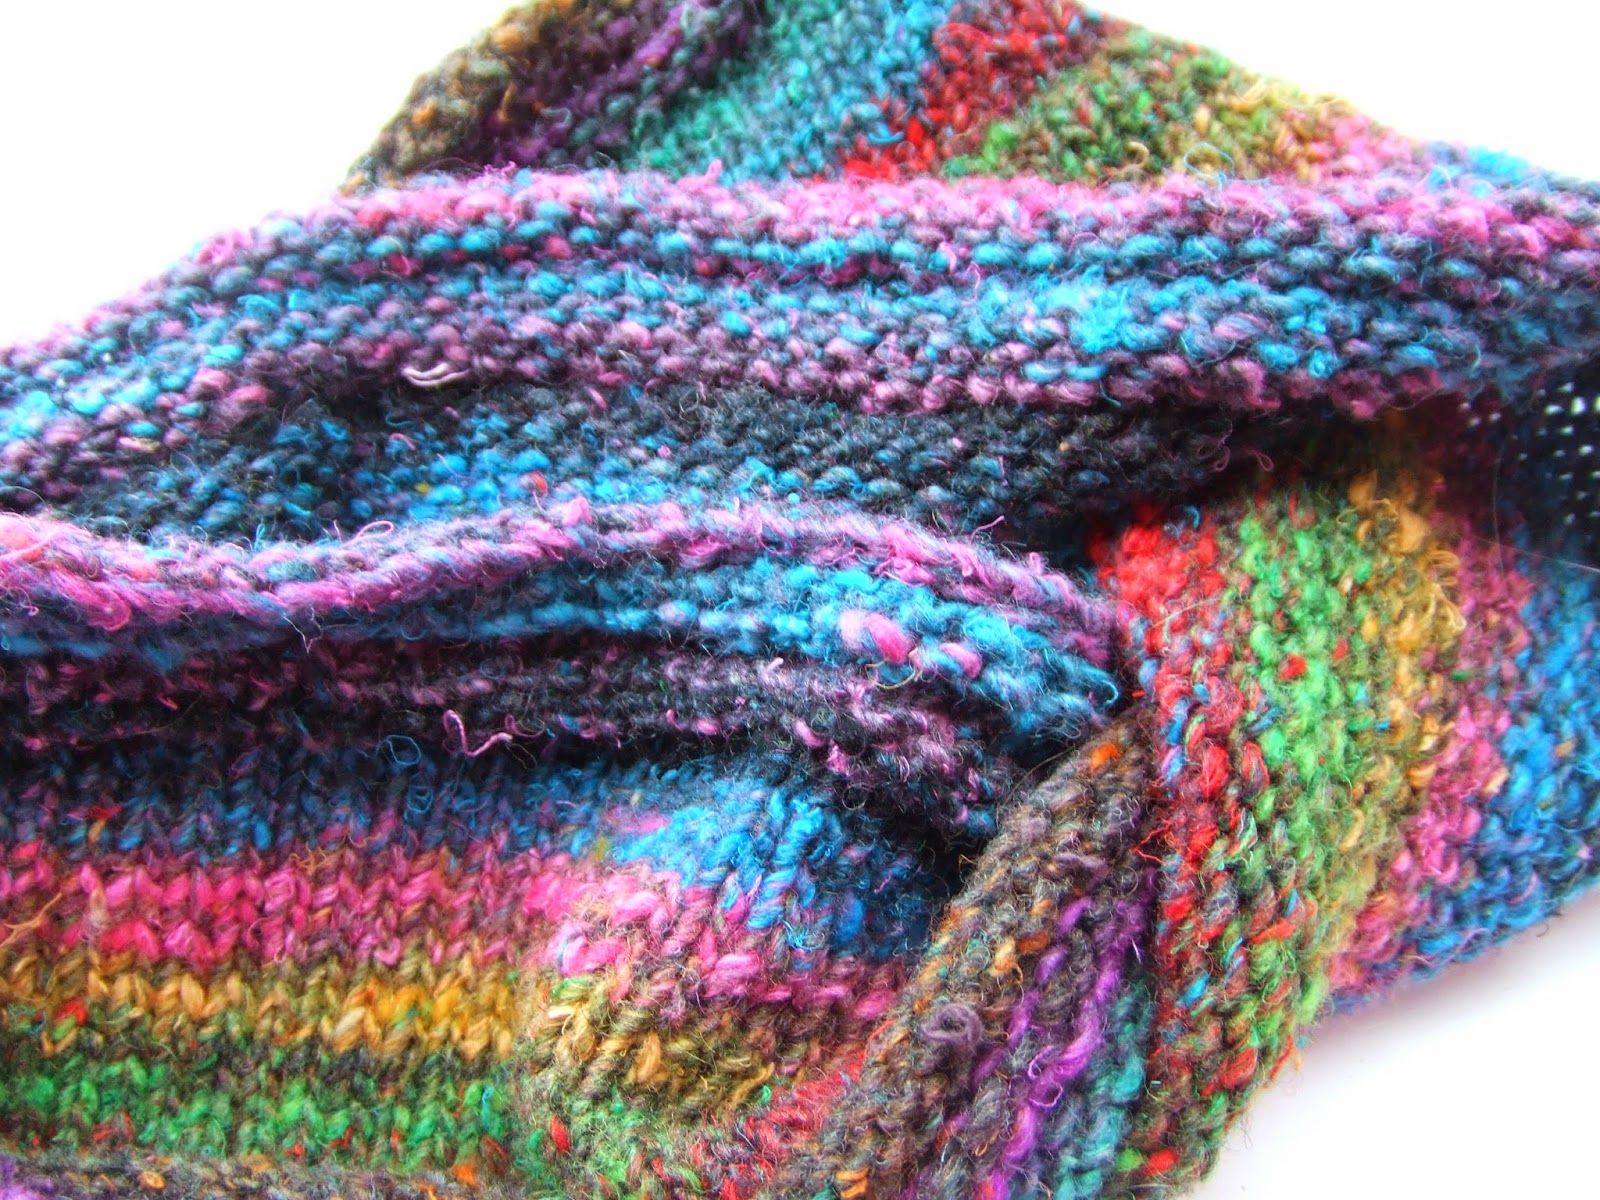 Noro Yarn Patterns Unique Design